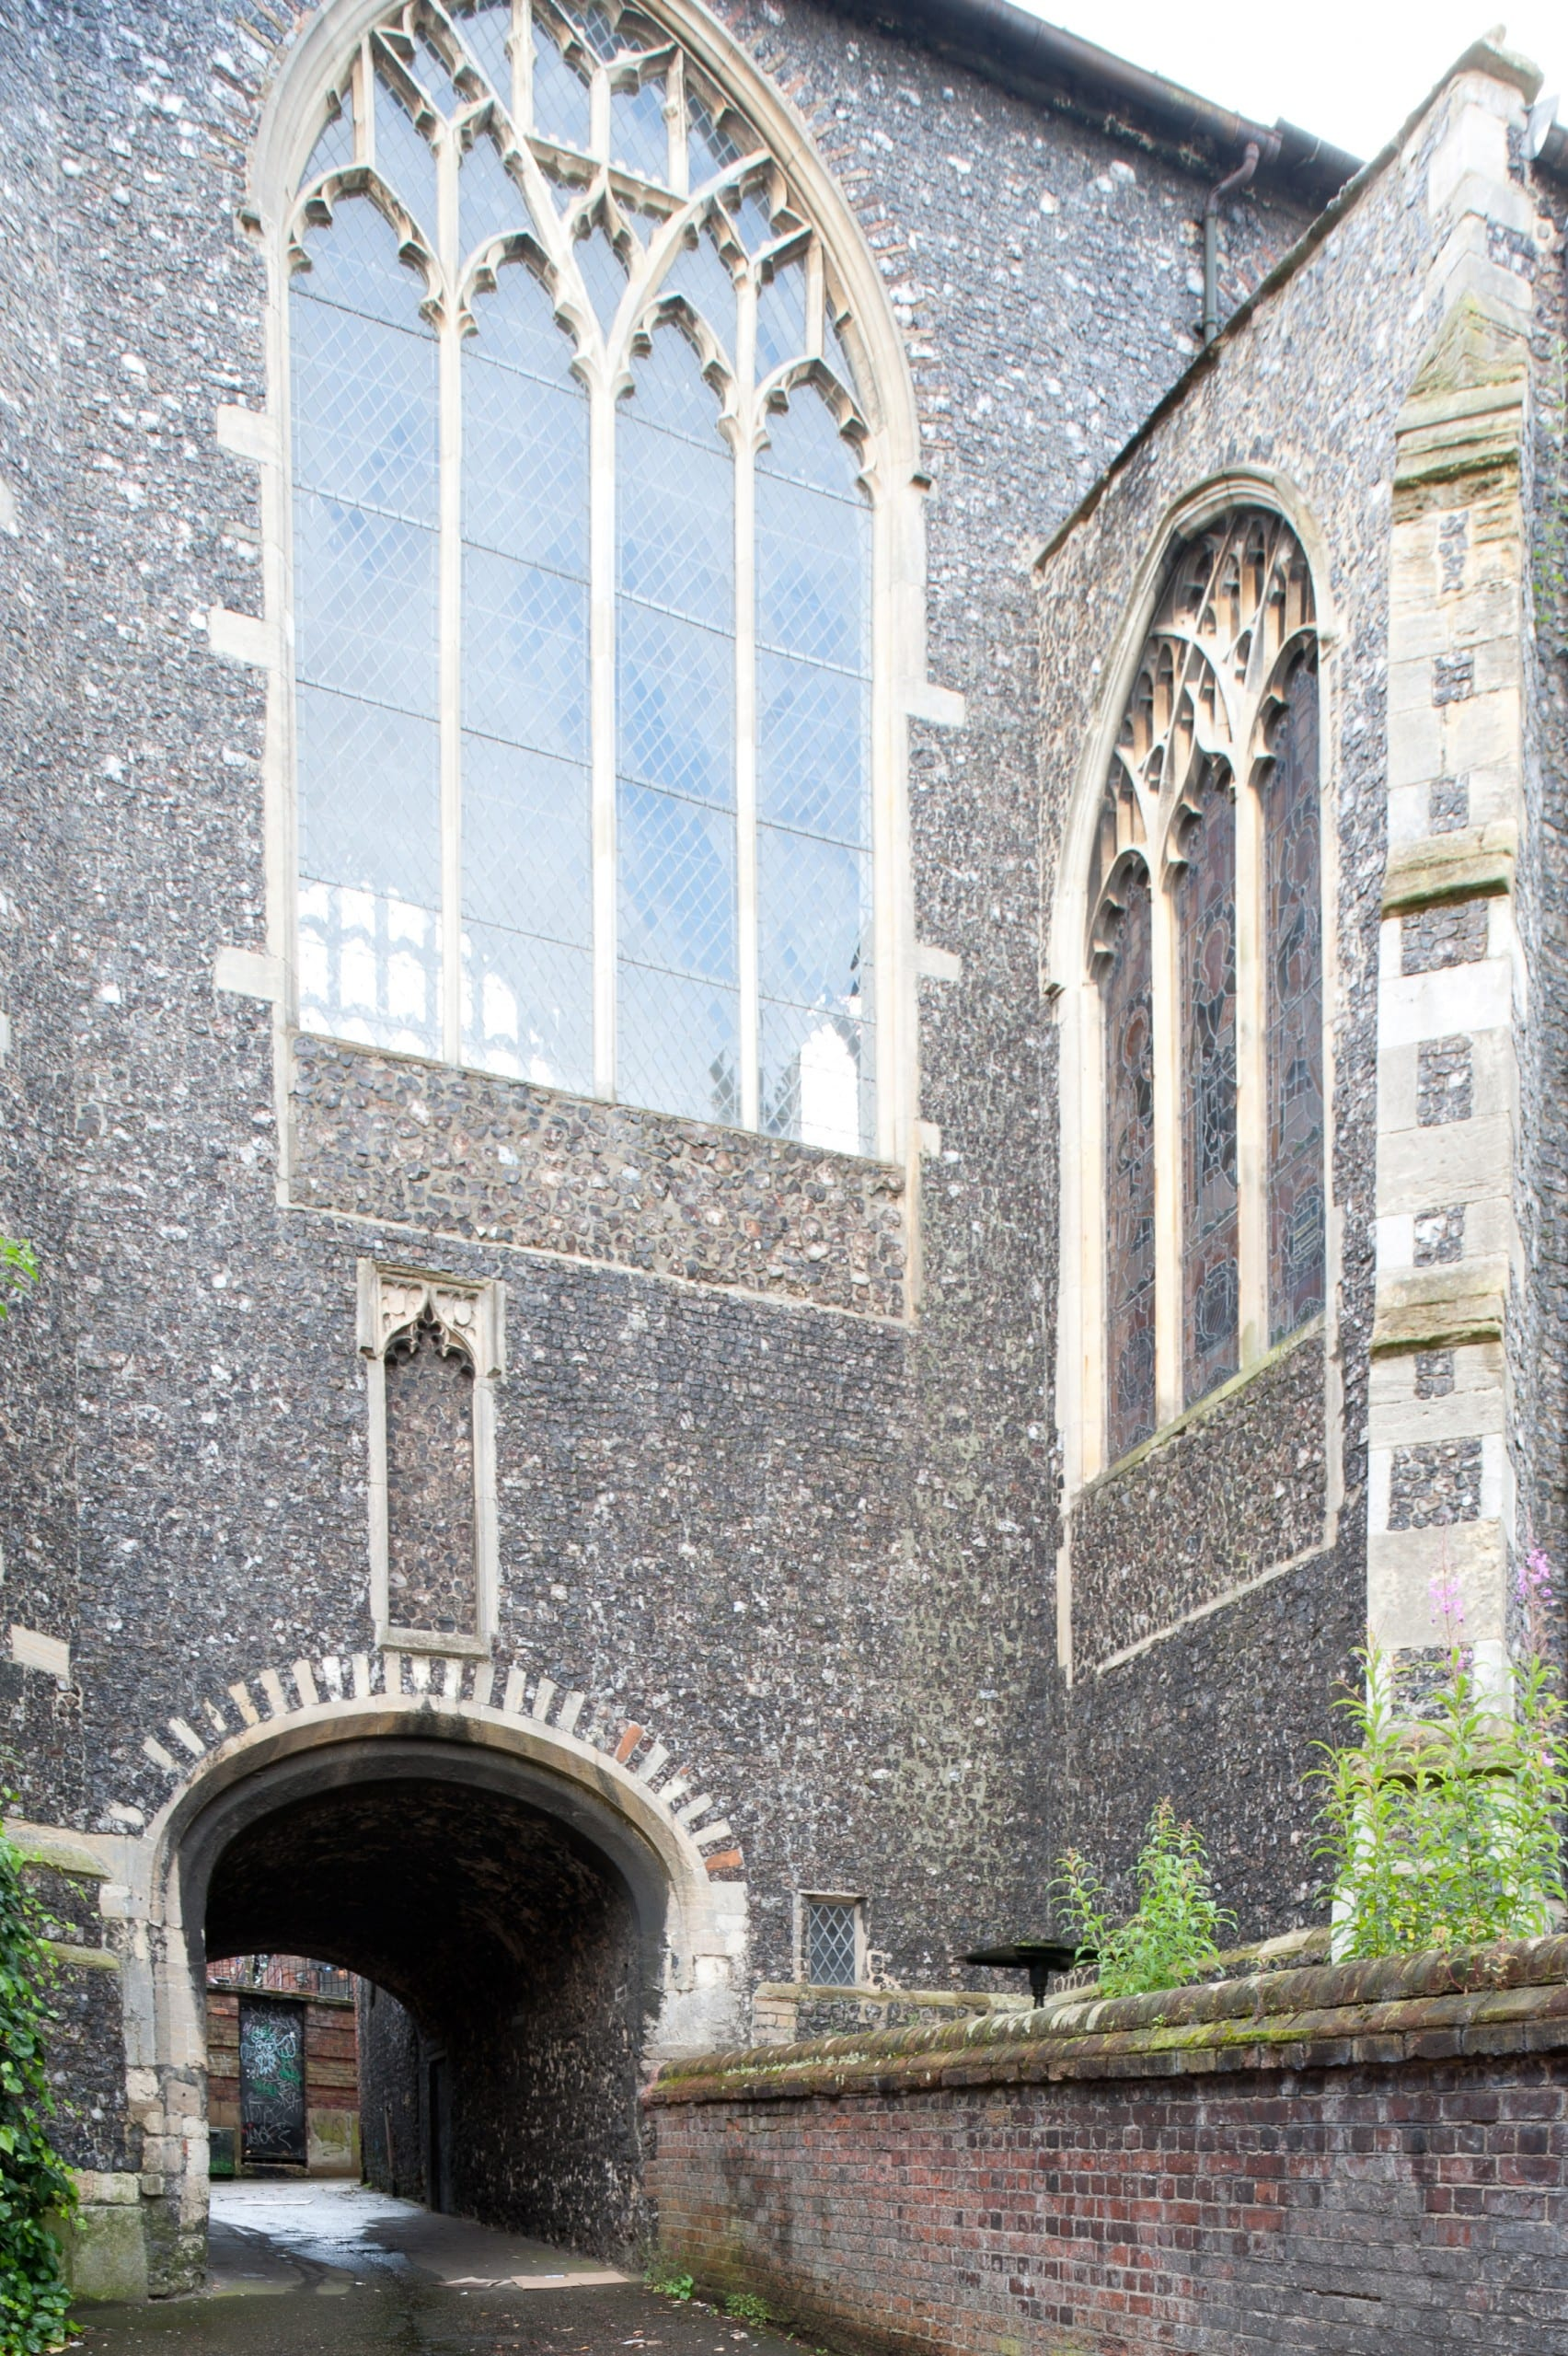 Fig. 7: East end of the former parish church of St. Gregory Pottergate, Norwich, England, view looking southwest (author's photo).